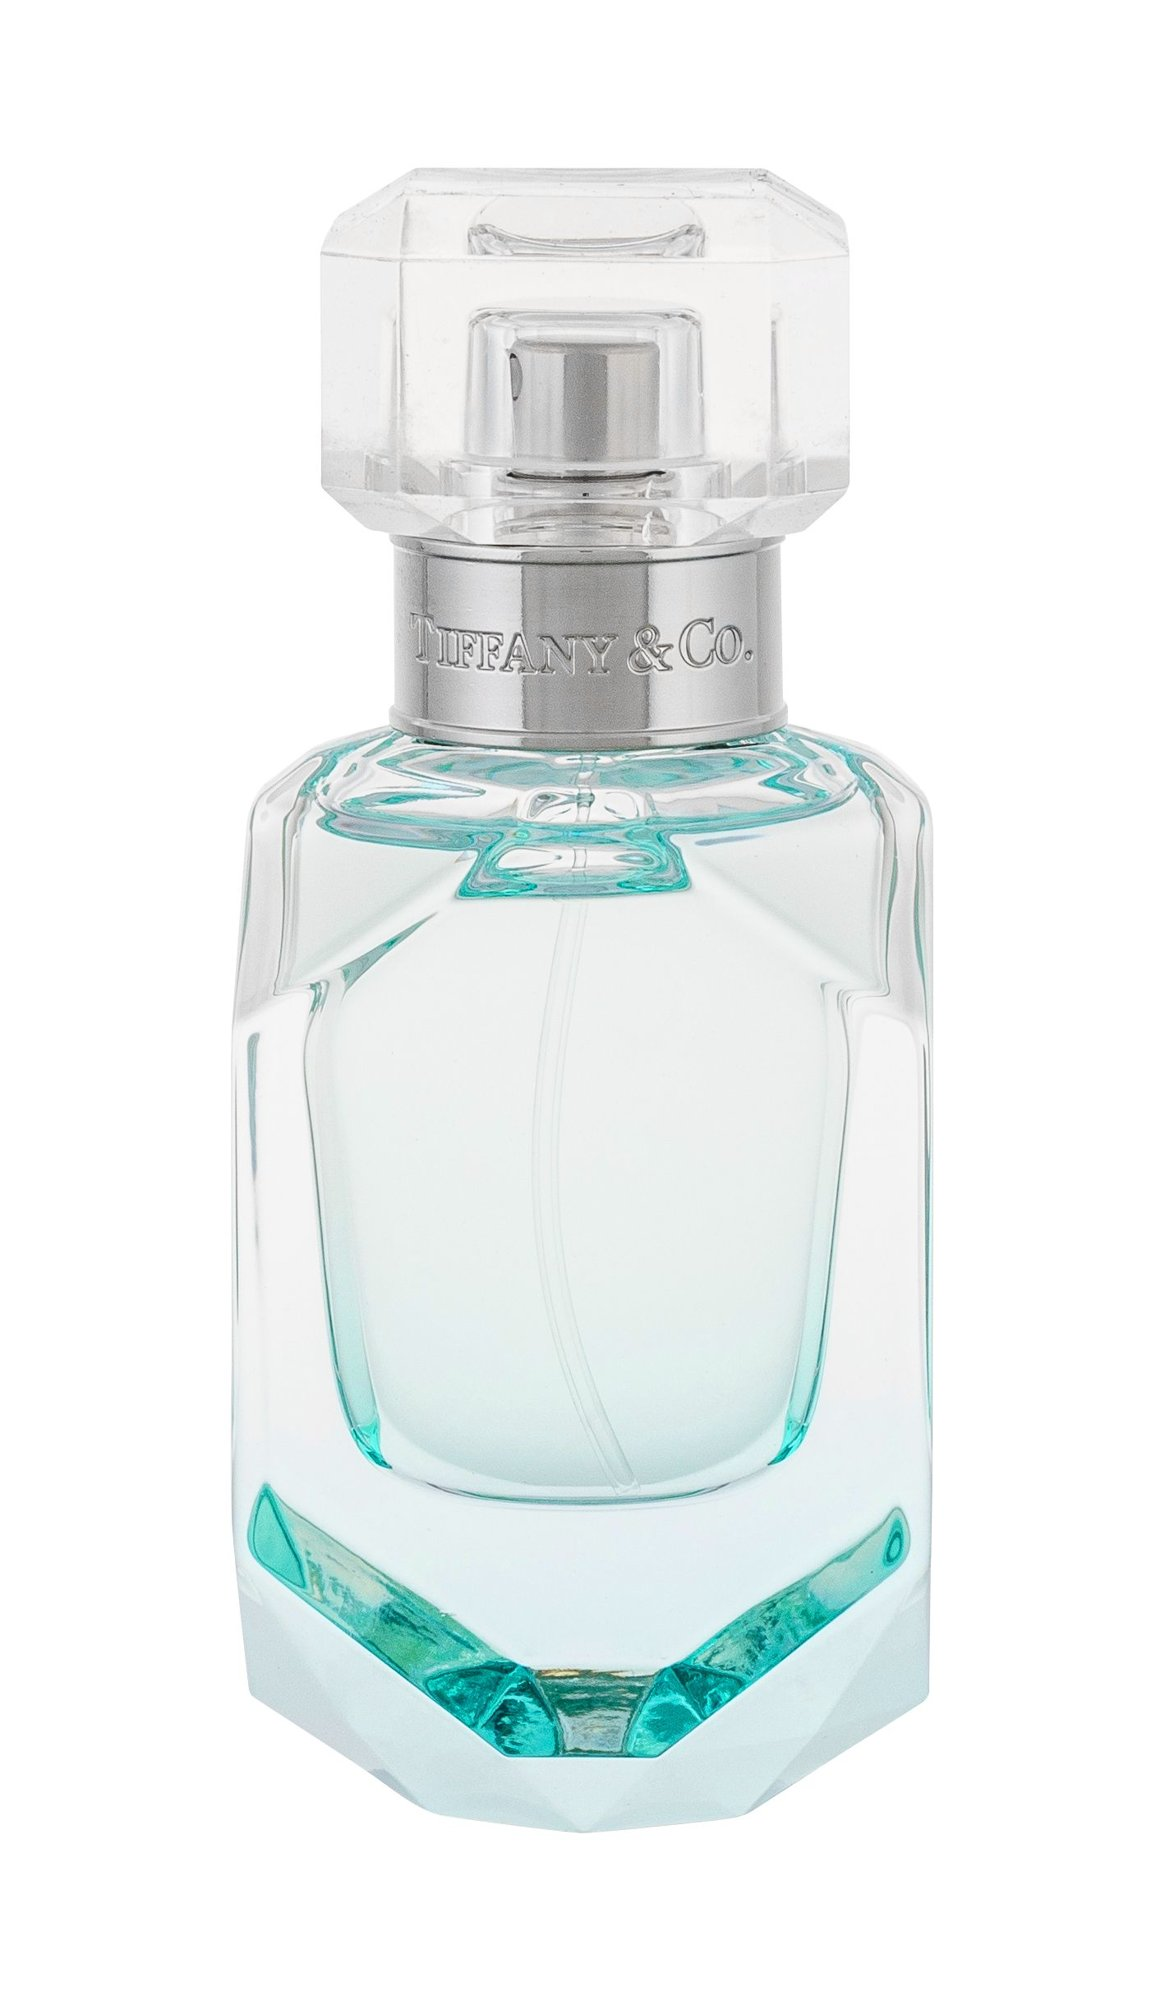 Tiffany & Co. Tiffany & Co. Eau de Parfum 30ml